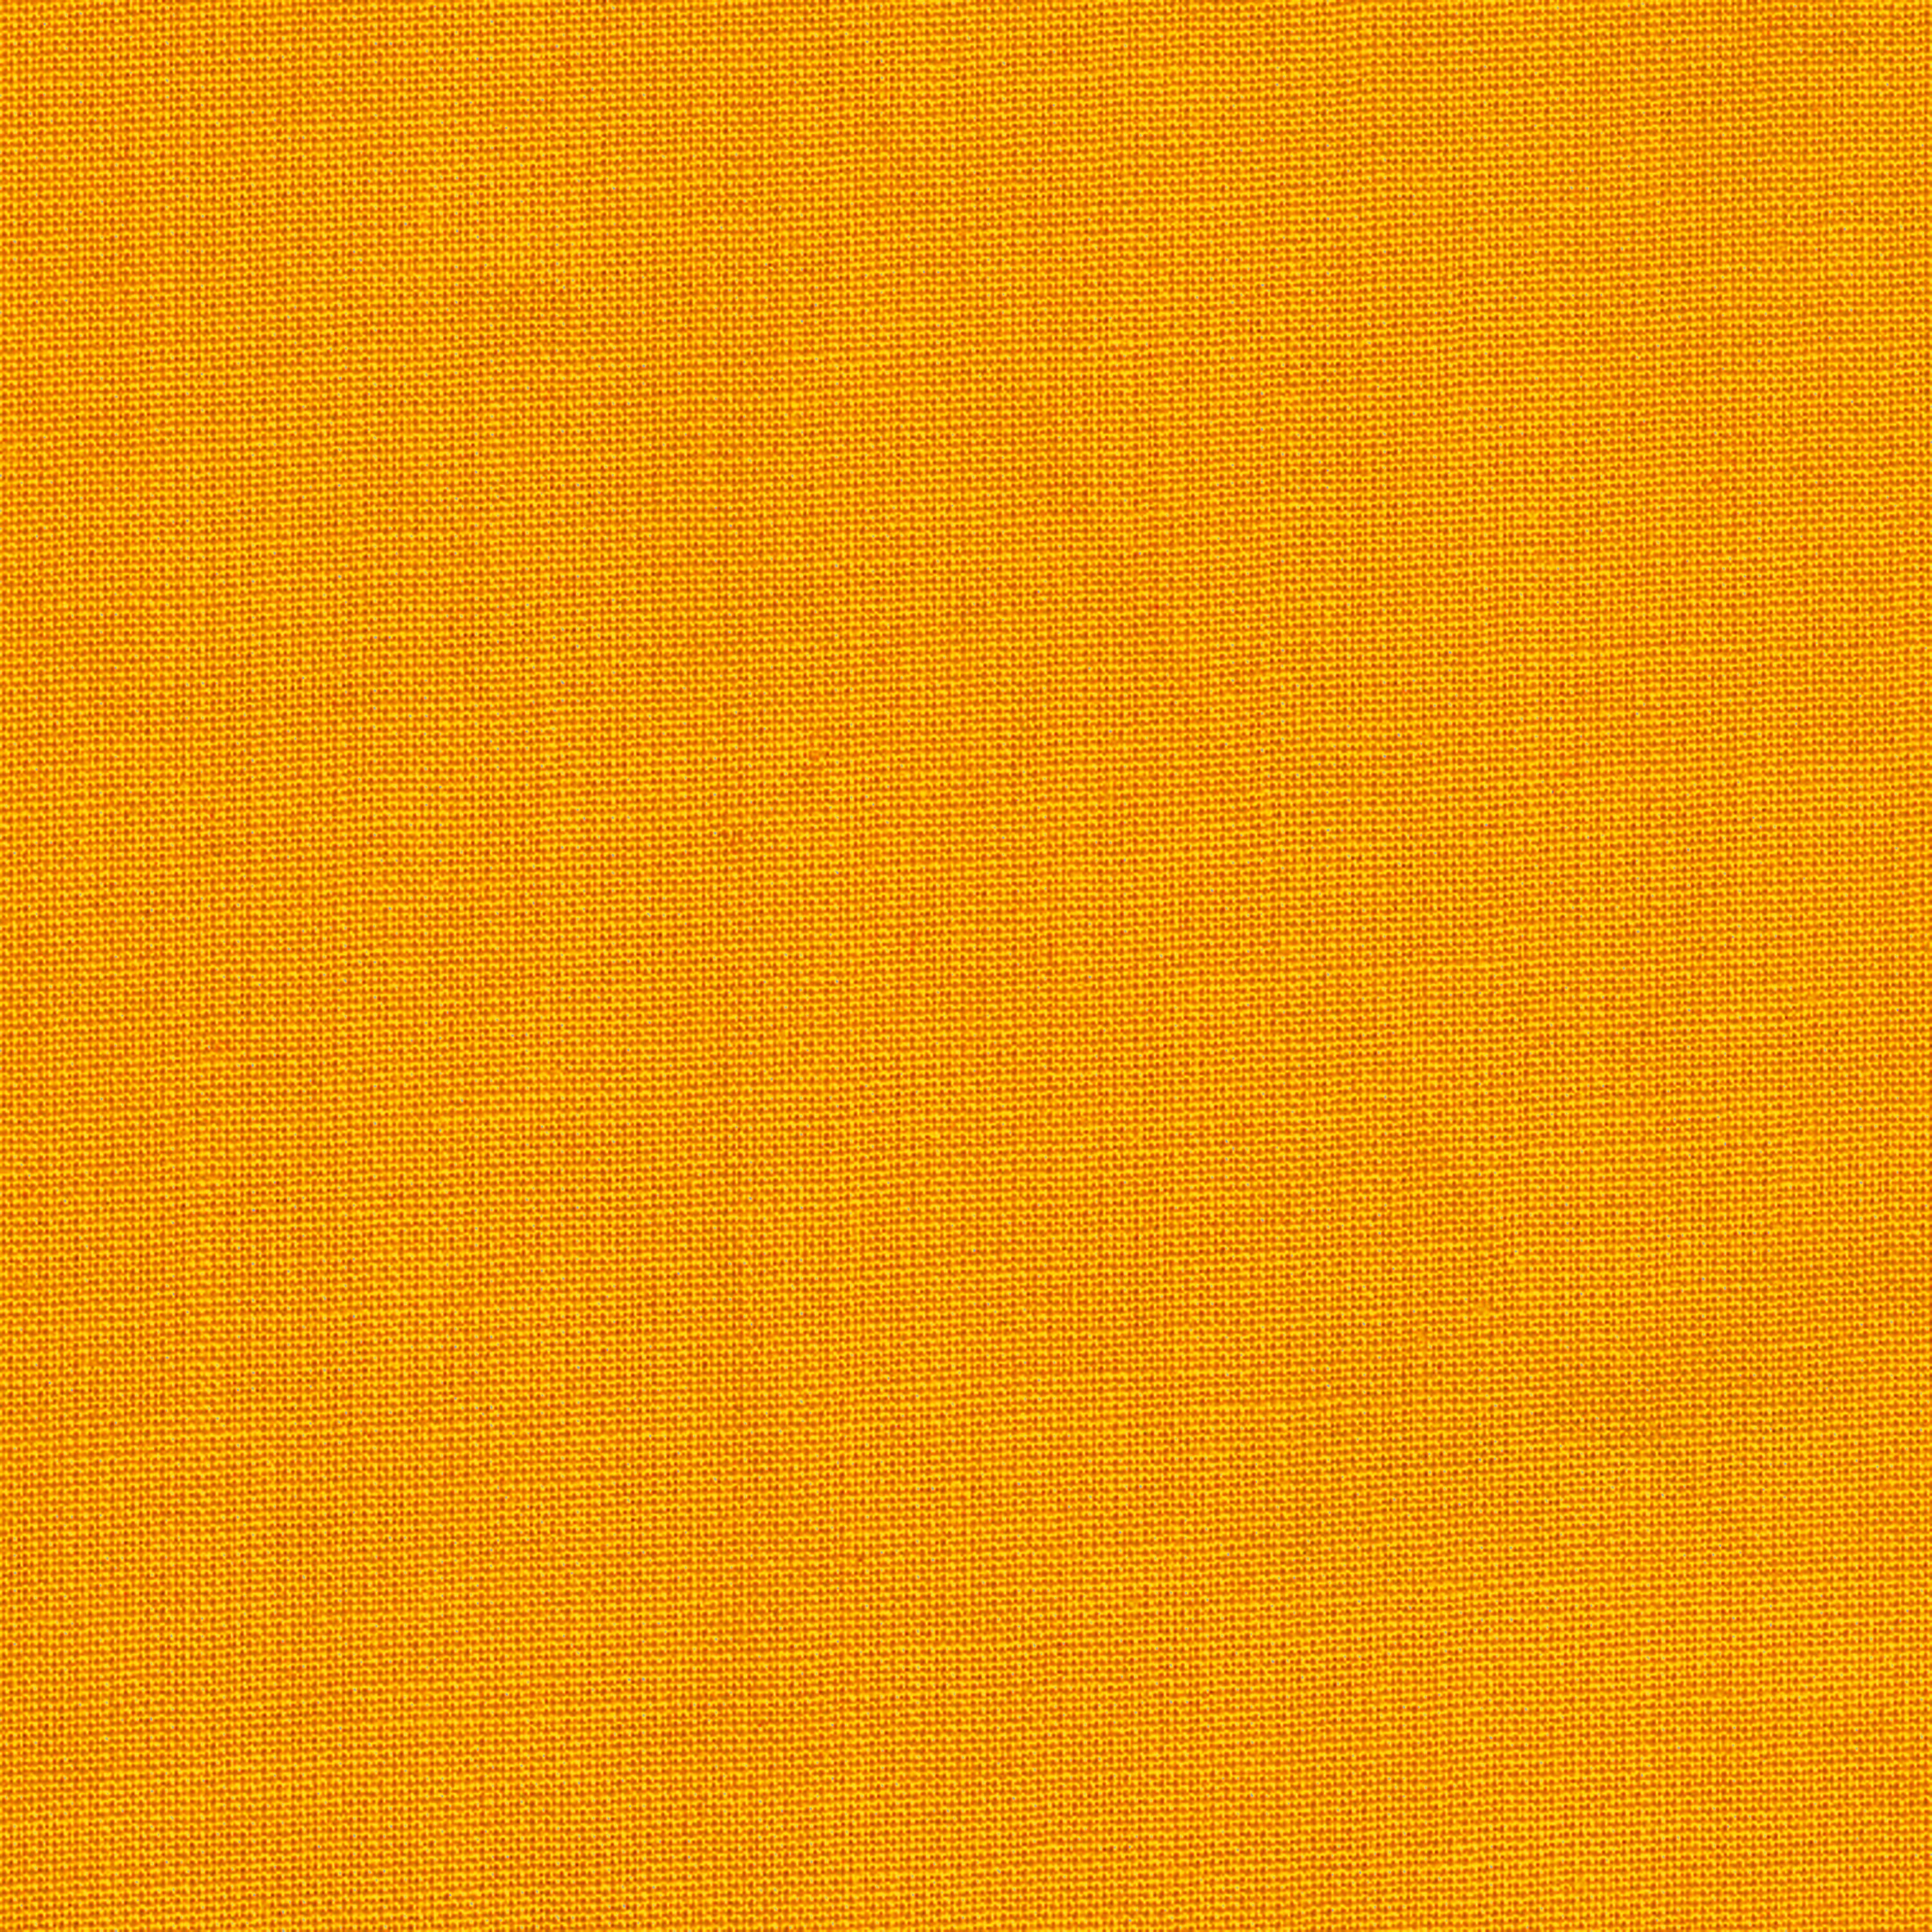 SHASON TEXTILE (3 Yards cut) 100% COTTON SOLID QUILTING FABRIC, DAFFODIL.